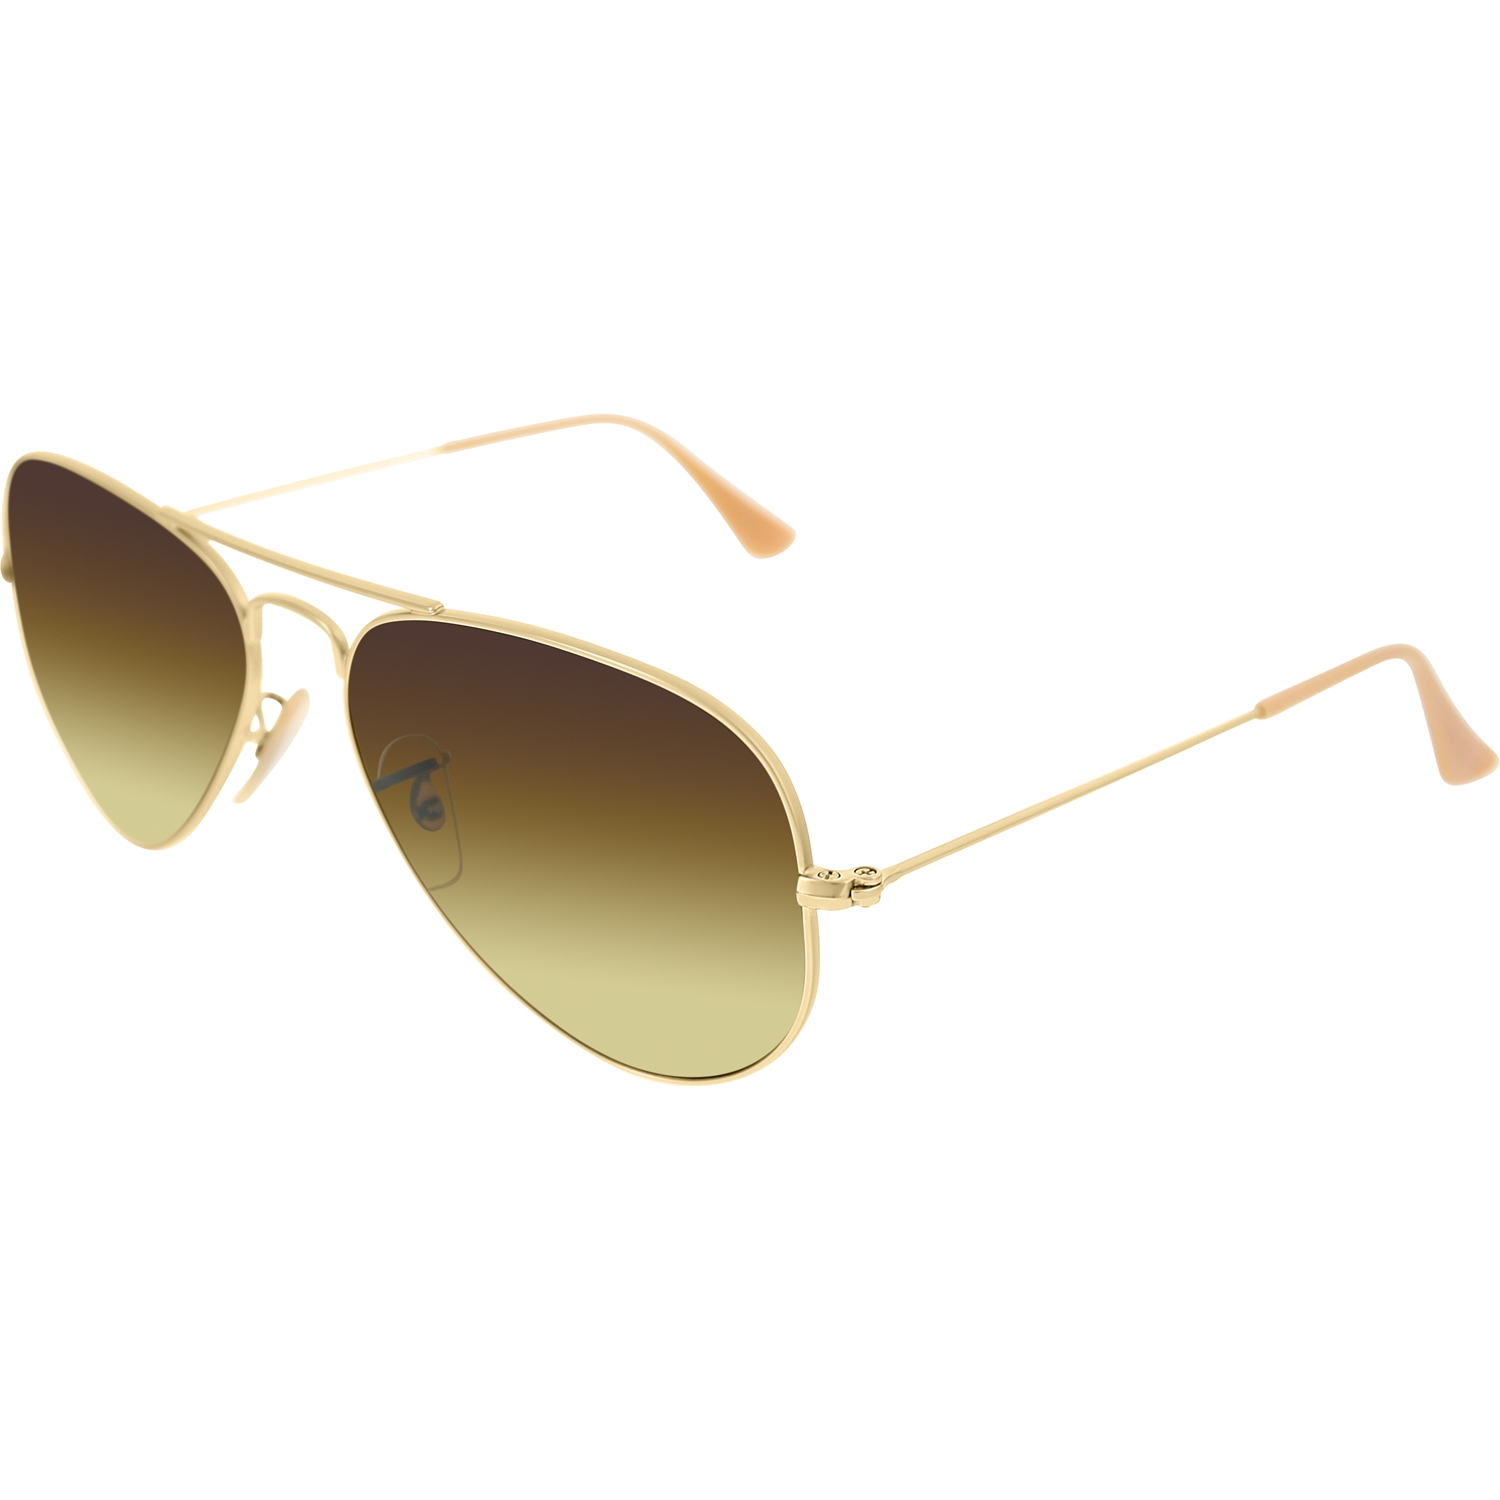 ray ban matte gold aviator  Ray Ban RB 3025 112/85 55mm Matte Gold Brown Gradient Lens Aviator ...